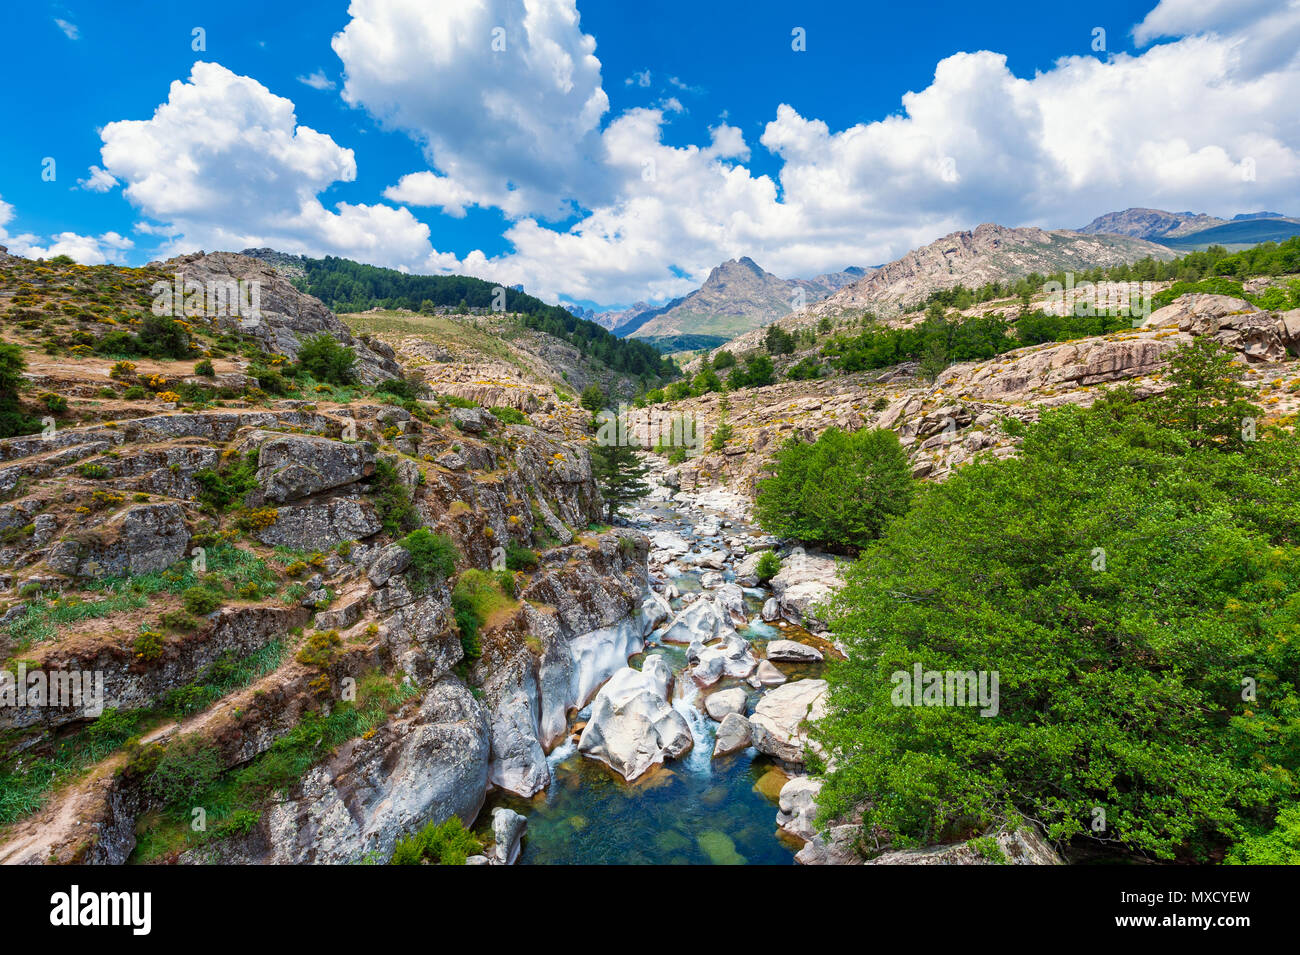 Stream and Mountain Range in Corsica, France in Springtime - Stock Image